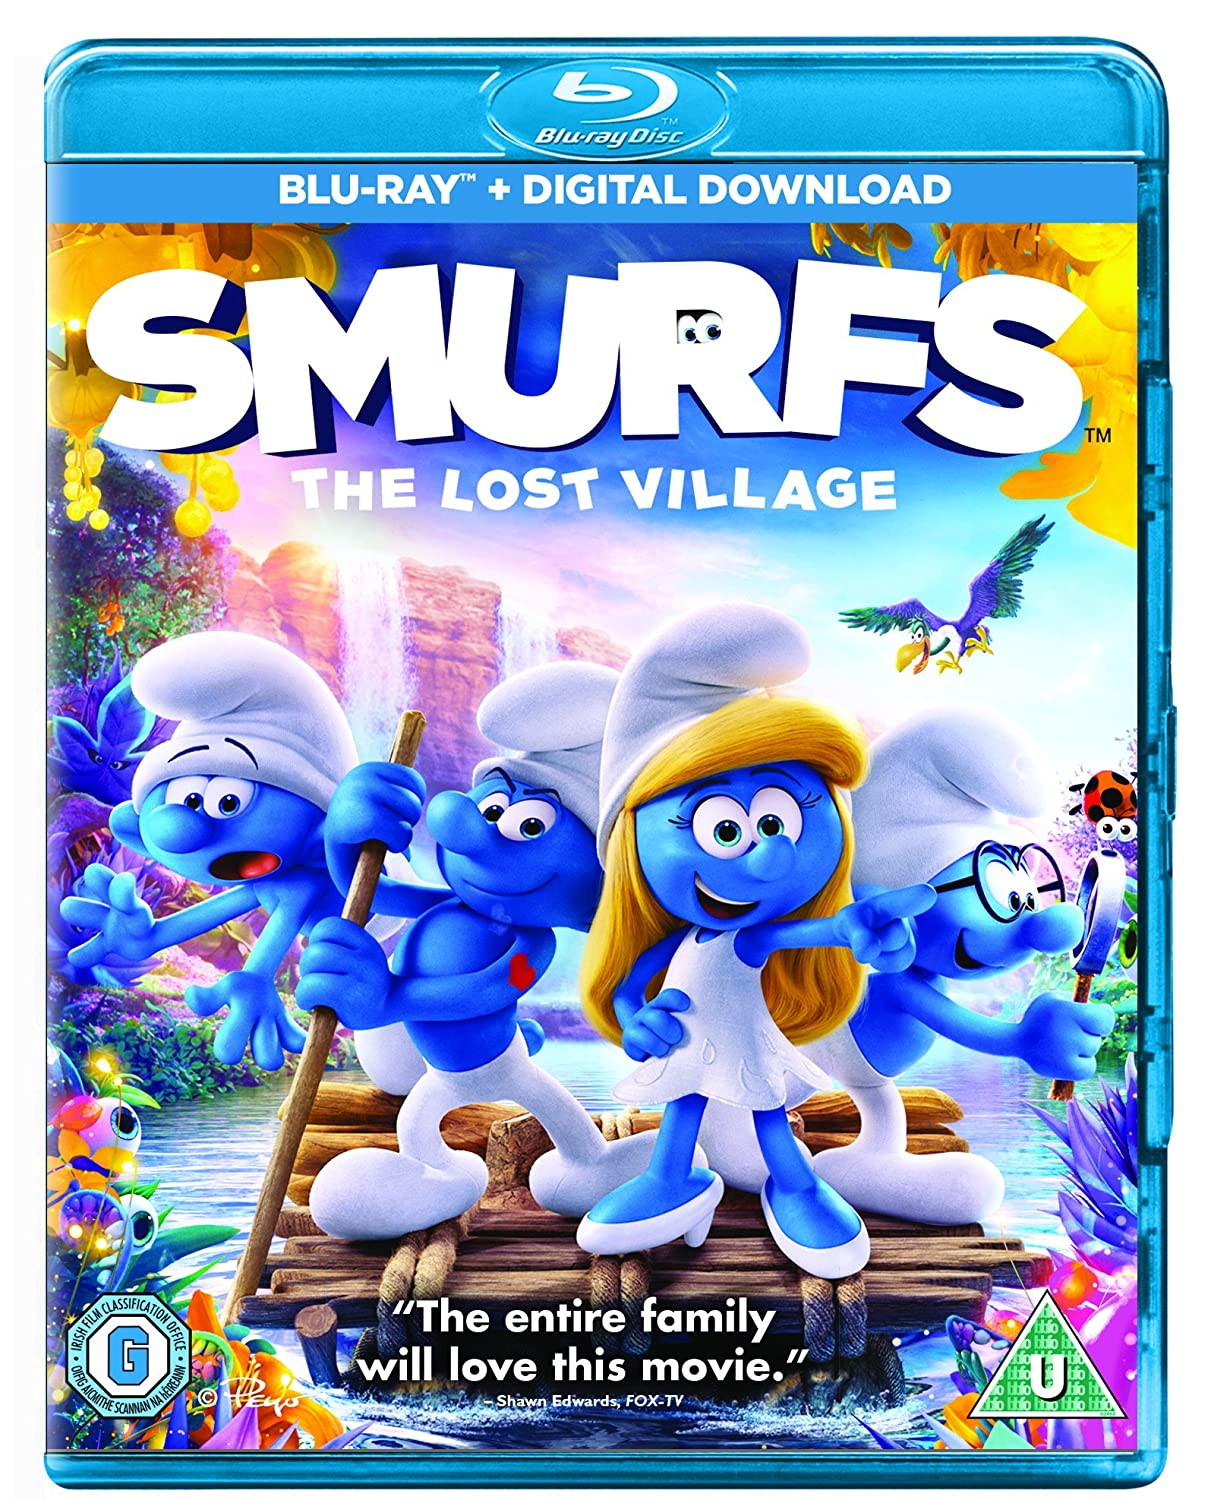 amazon com smurfs the lost village blu ray 2017 region free demi lovato rainn wilson joe manganiello jack mcbrayer danny pudi mandy patinkin dee bradley baker frank welker michelle rodriguez ellie kemper kelly asbury smurfs the lost village blu ray 2017 region free